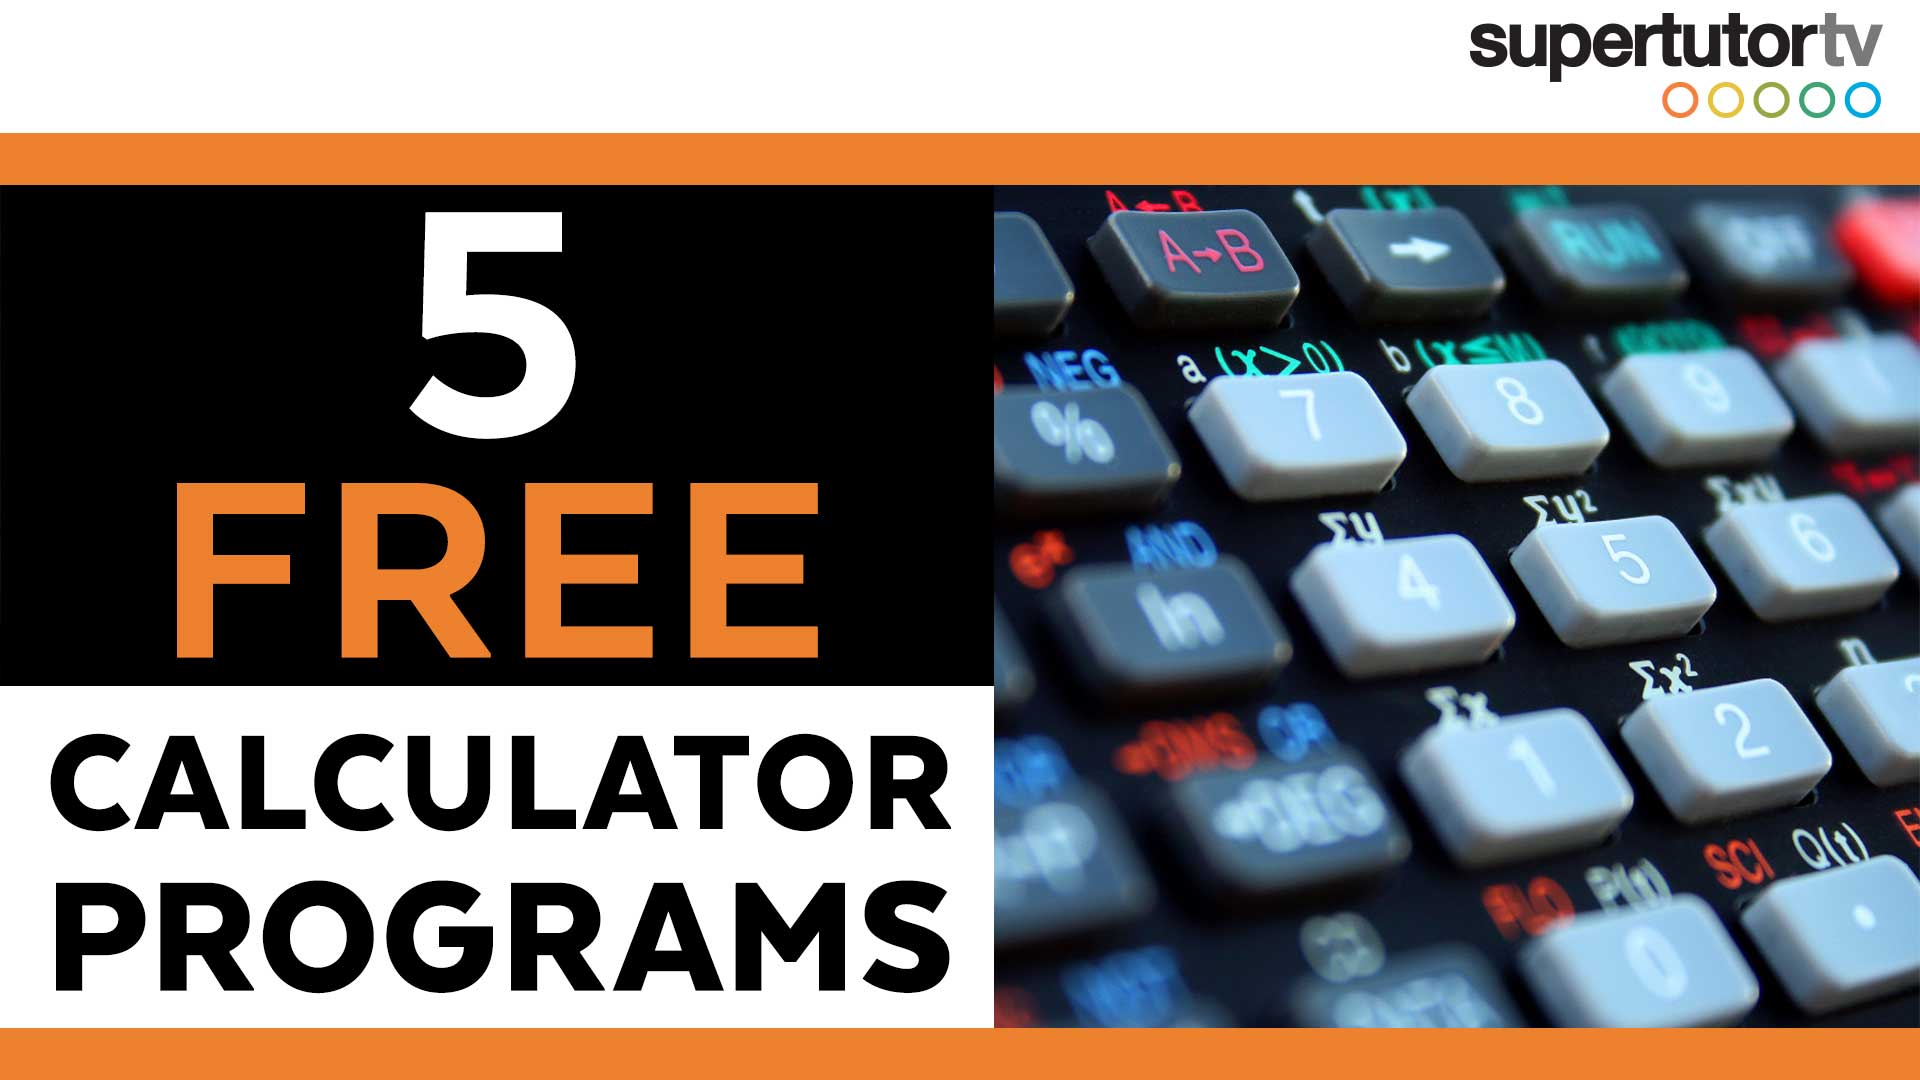 FREE TI-84 Hacks!! 5 ACT Calculator Programs | SupertutorTV